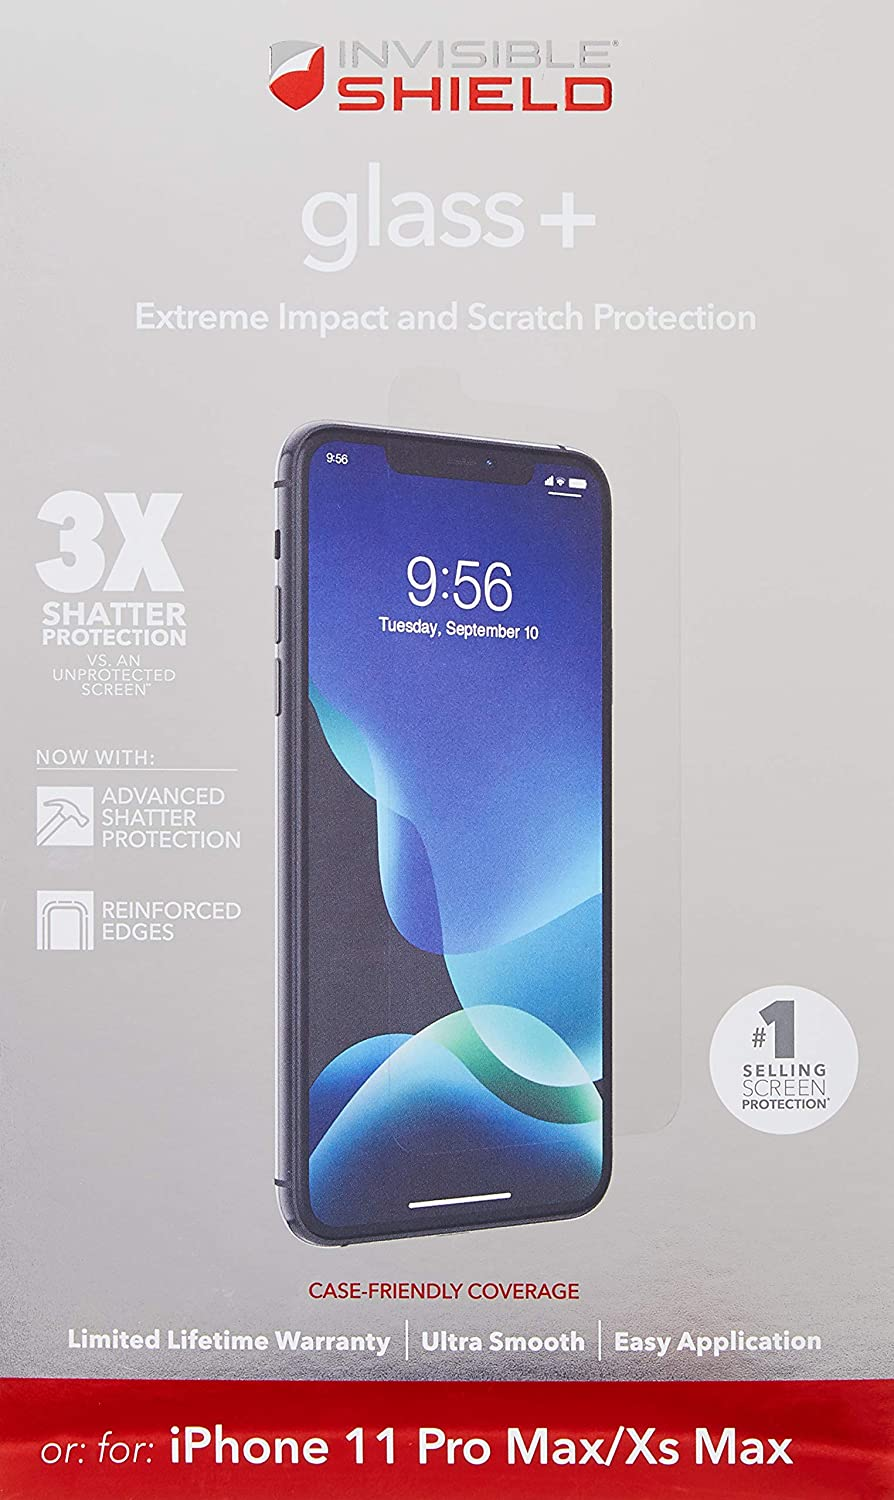 ZAGG InvisibleShield Glass+ Screen Protector – High-Definition Tempered Glass Made for Apple iPhone 6.1 – Impact & Scratch Protection